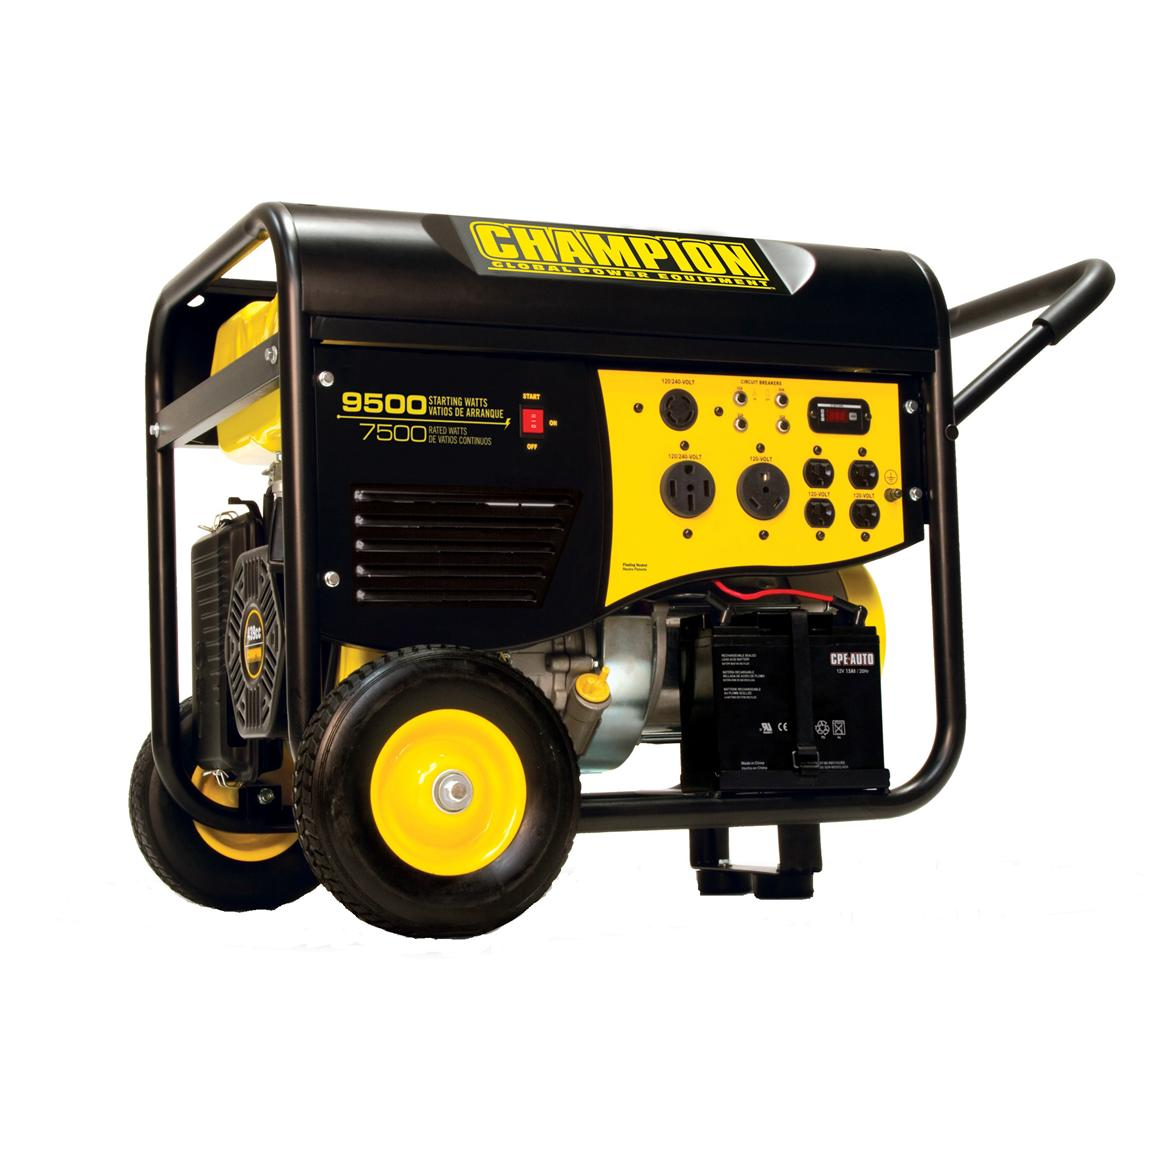 Champion Power Equipment Portable CARB-compliant 7,500 / 9,500-watt Electric Start 50-amp + RV Generator with Wheel Kit